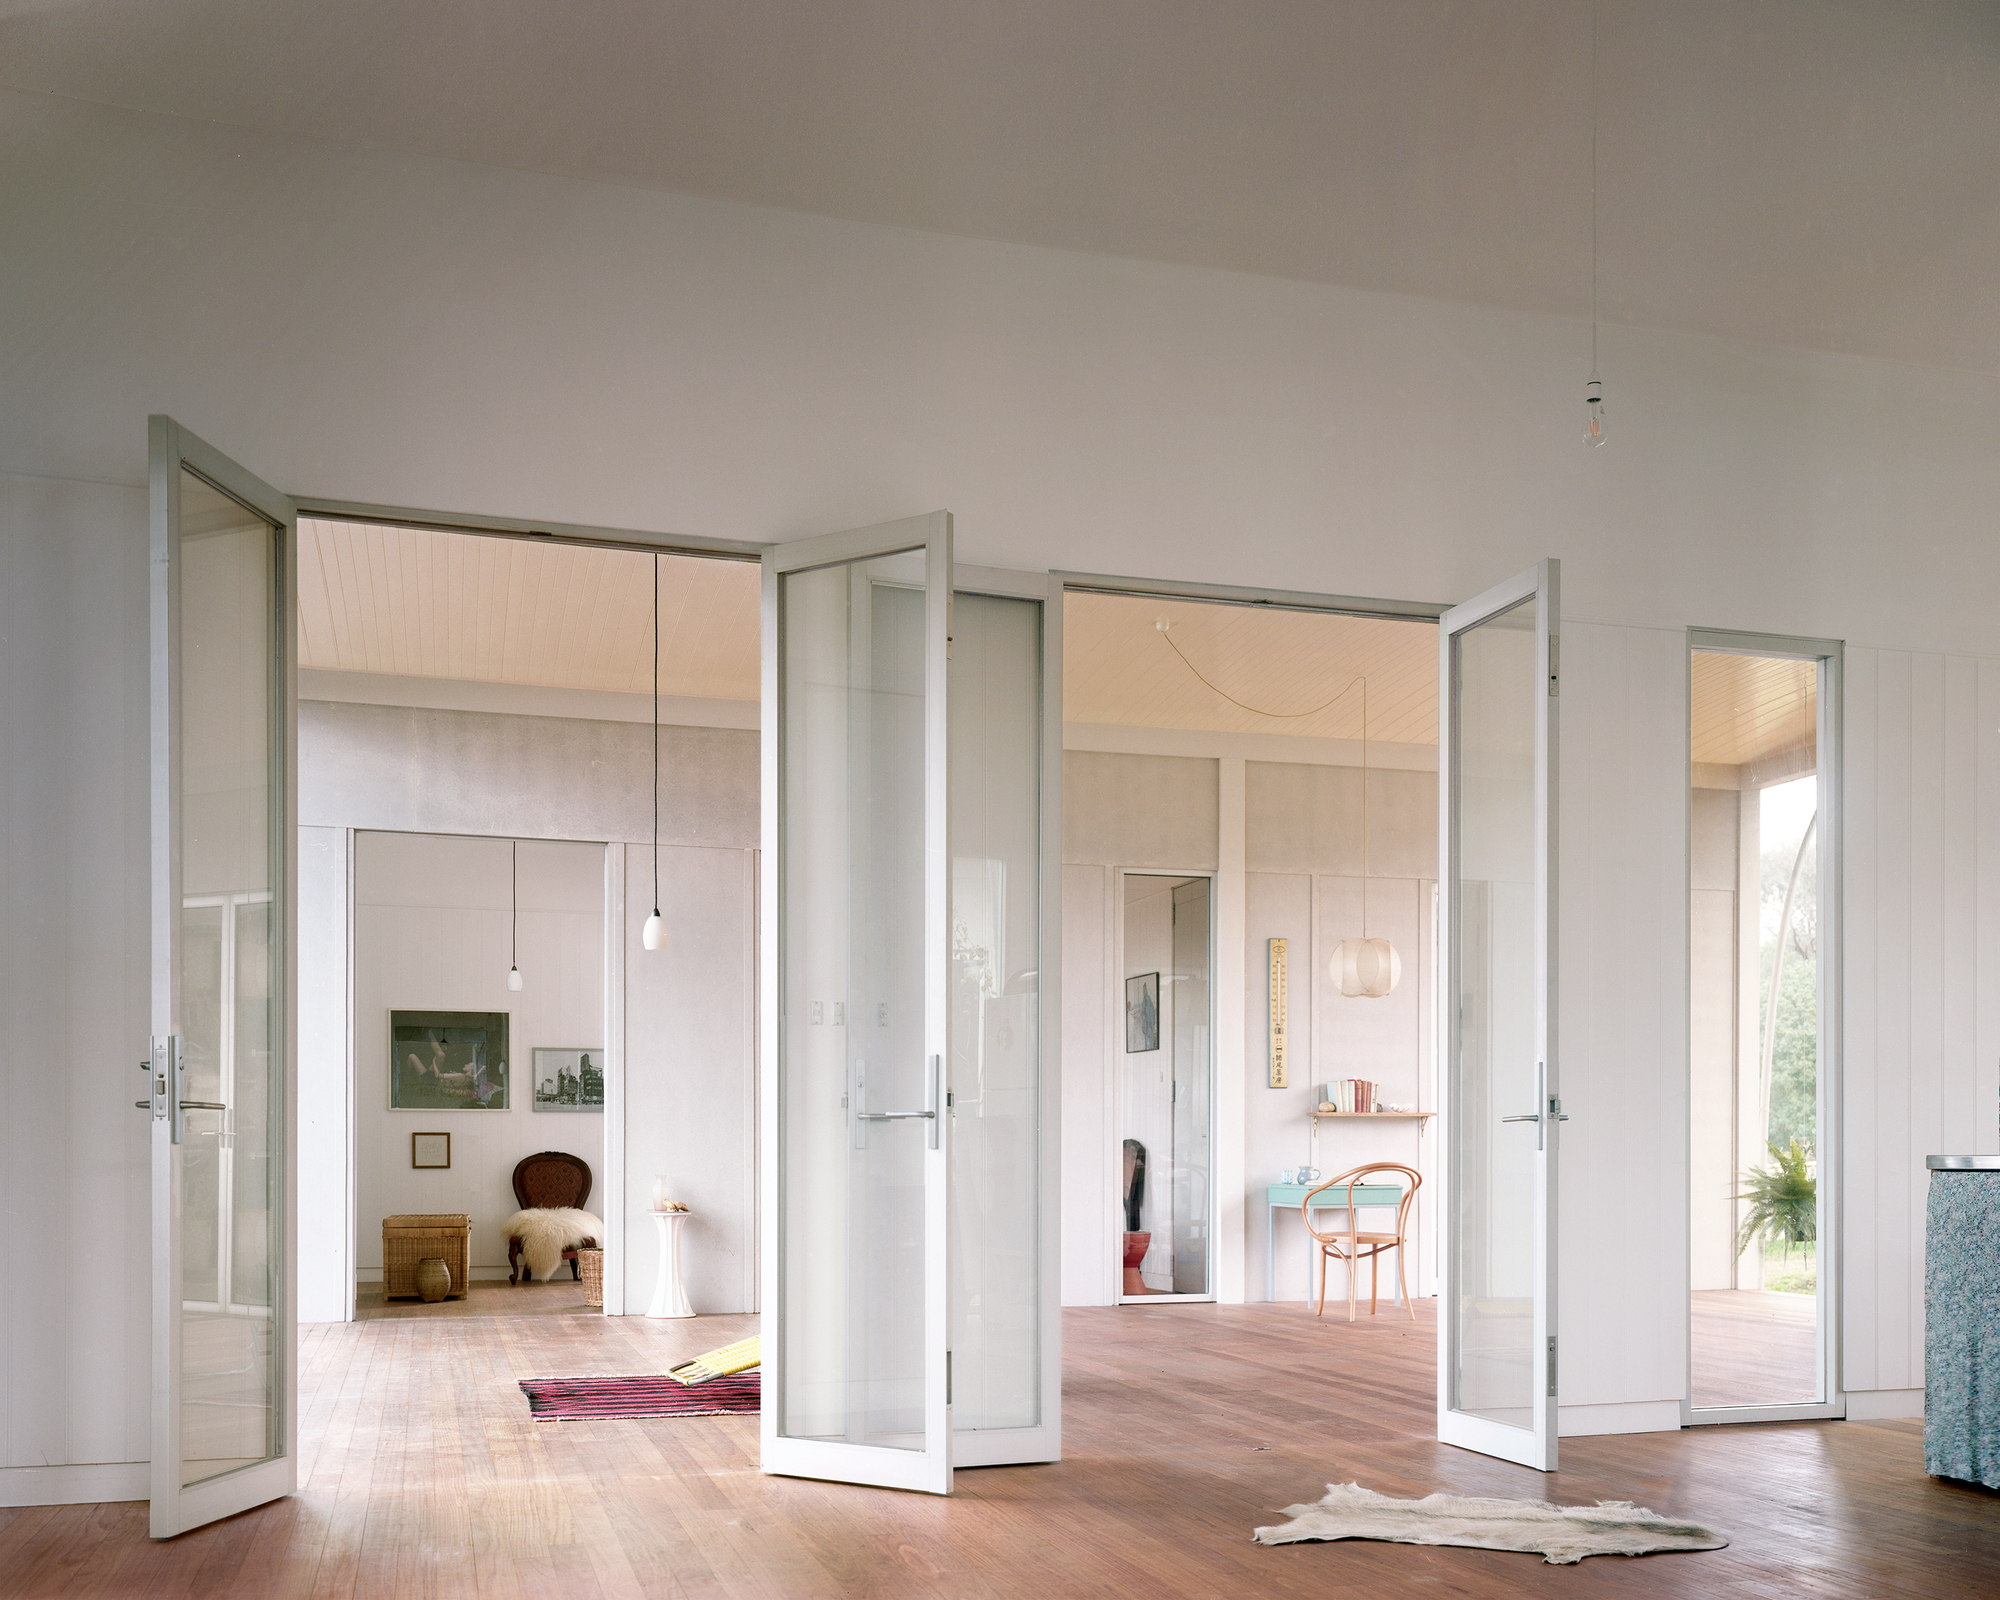 Framed glass doors connecting different rooms of the house